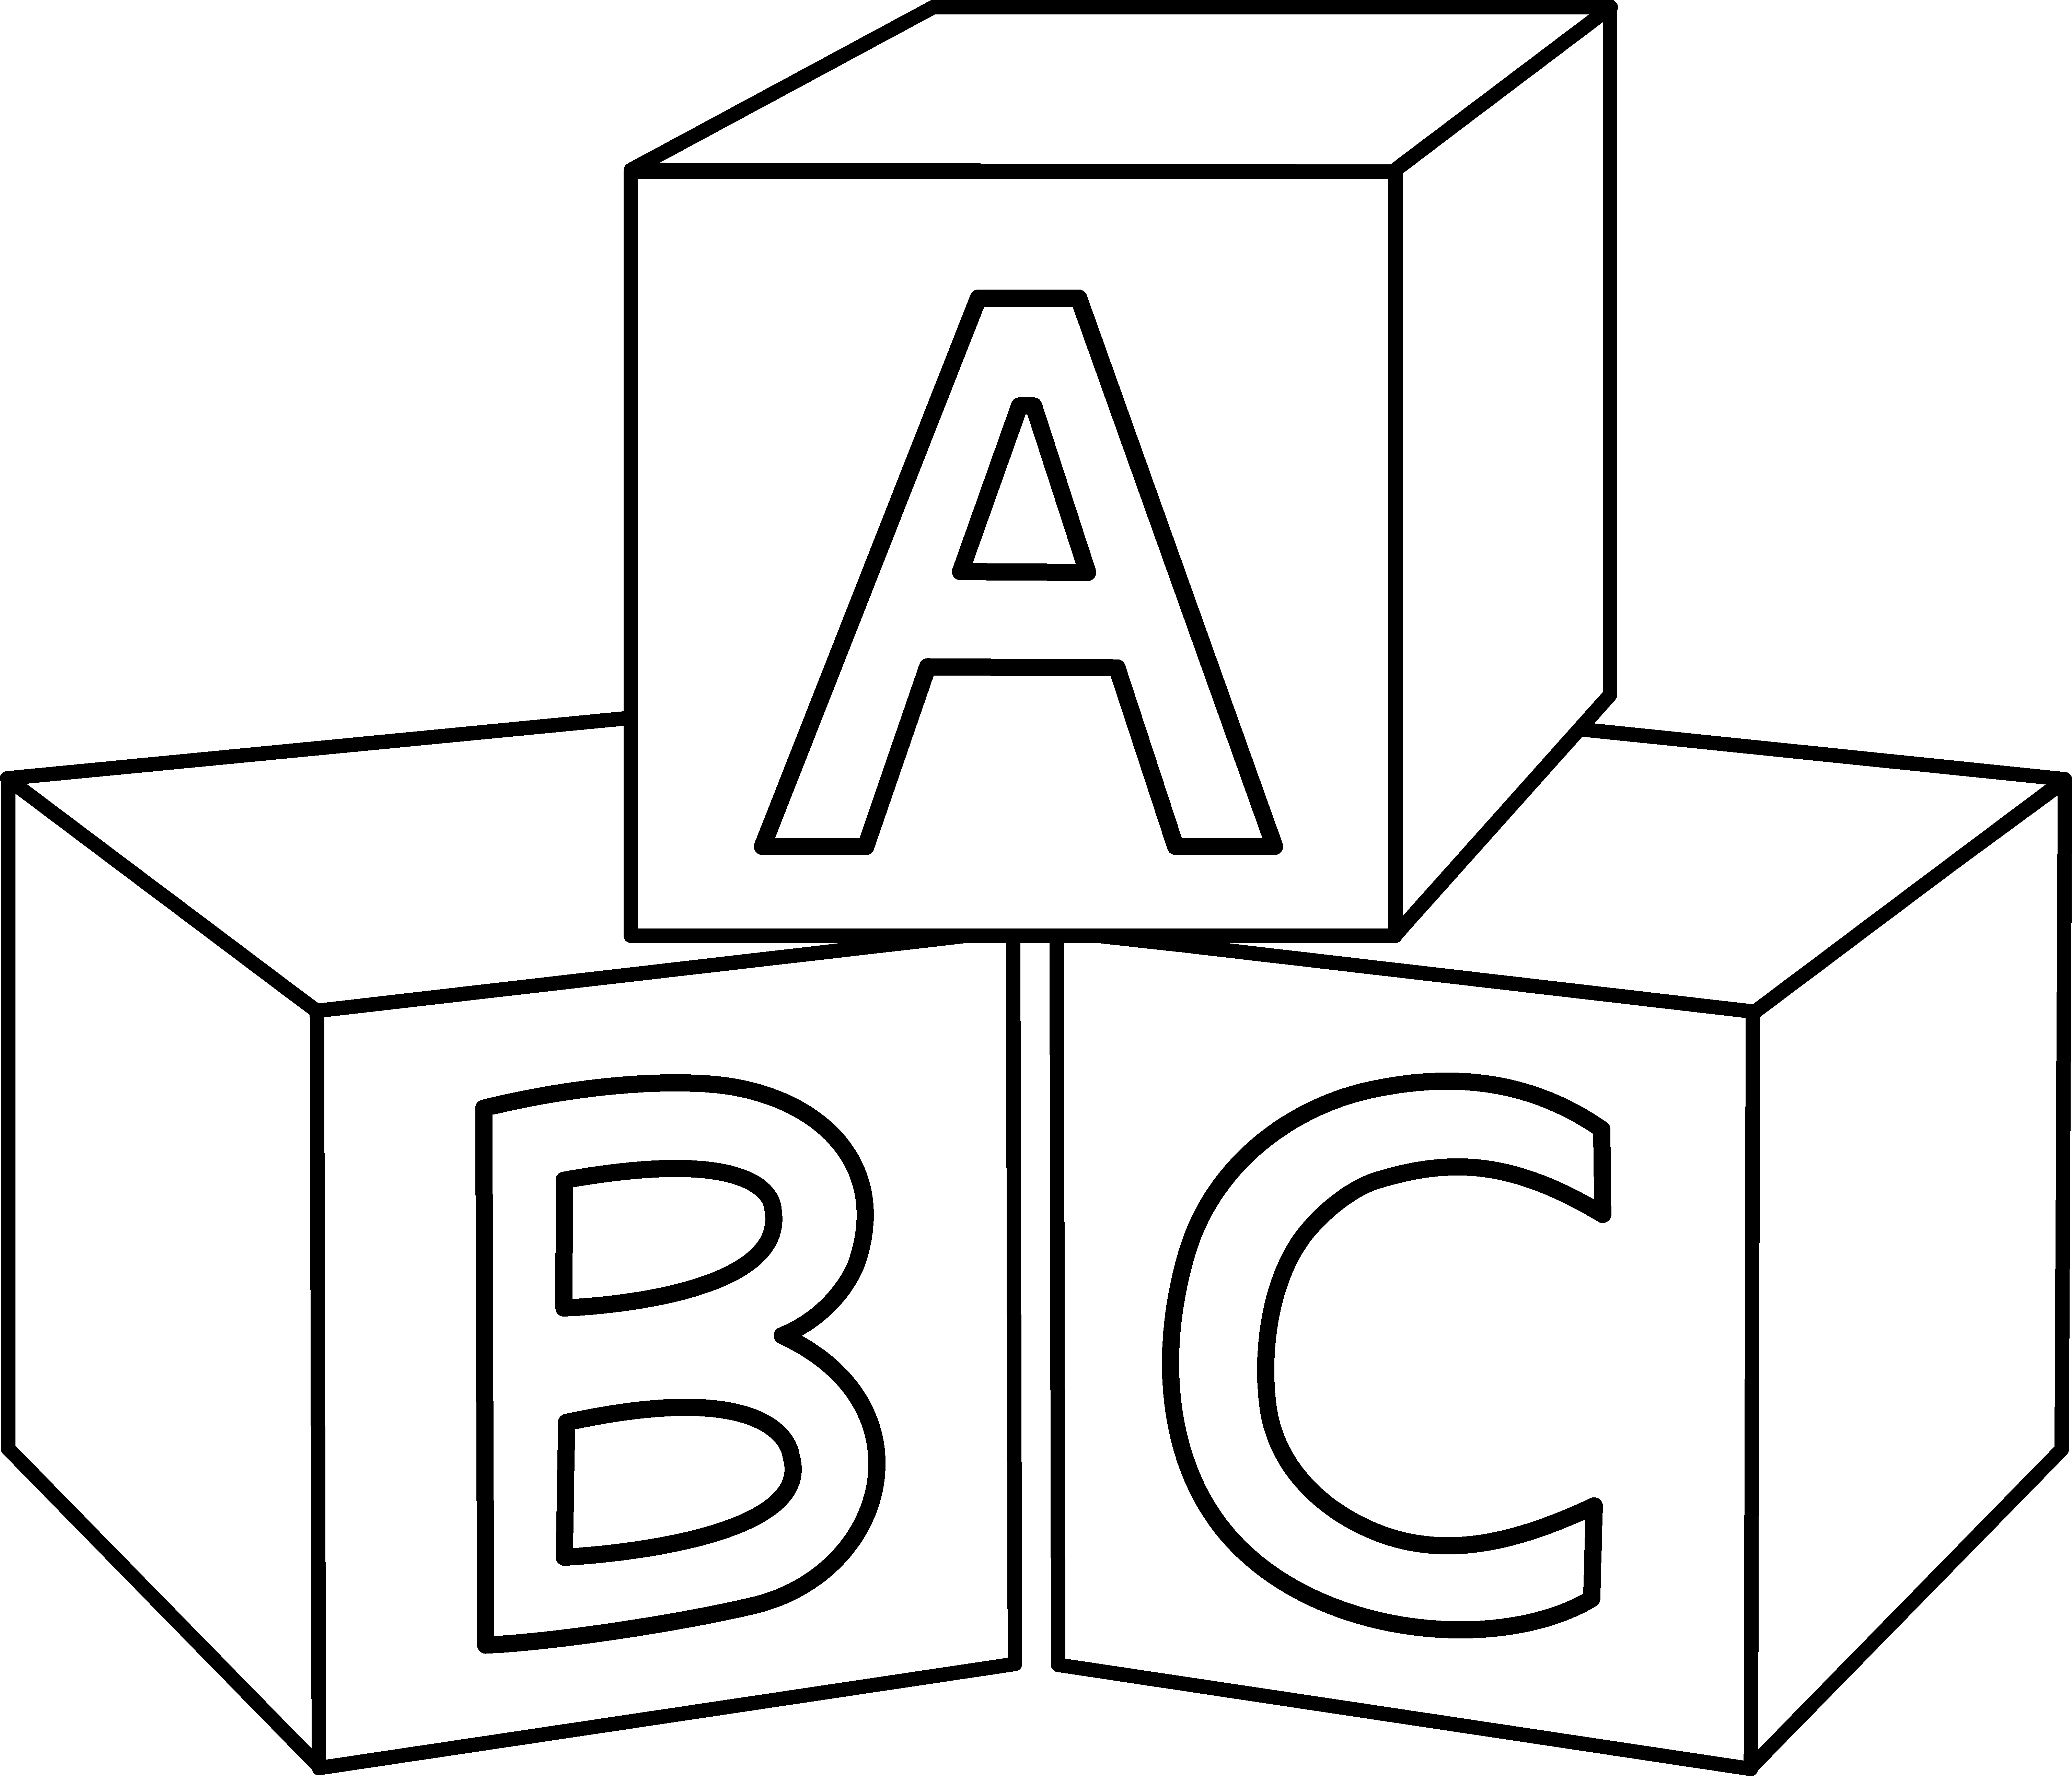 coloring abc draw abc drawing at getdrawings free download abc draw coloring